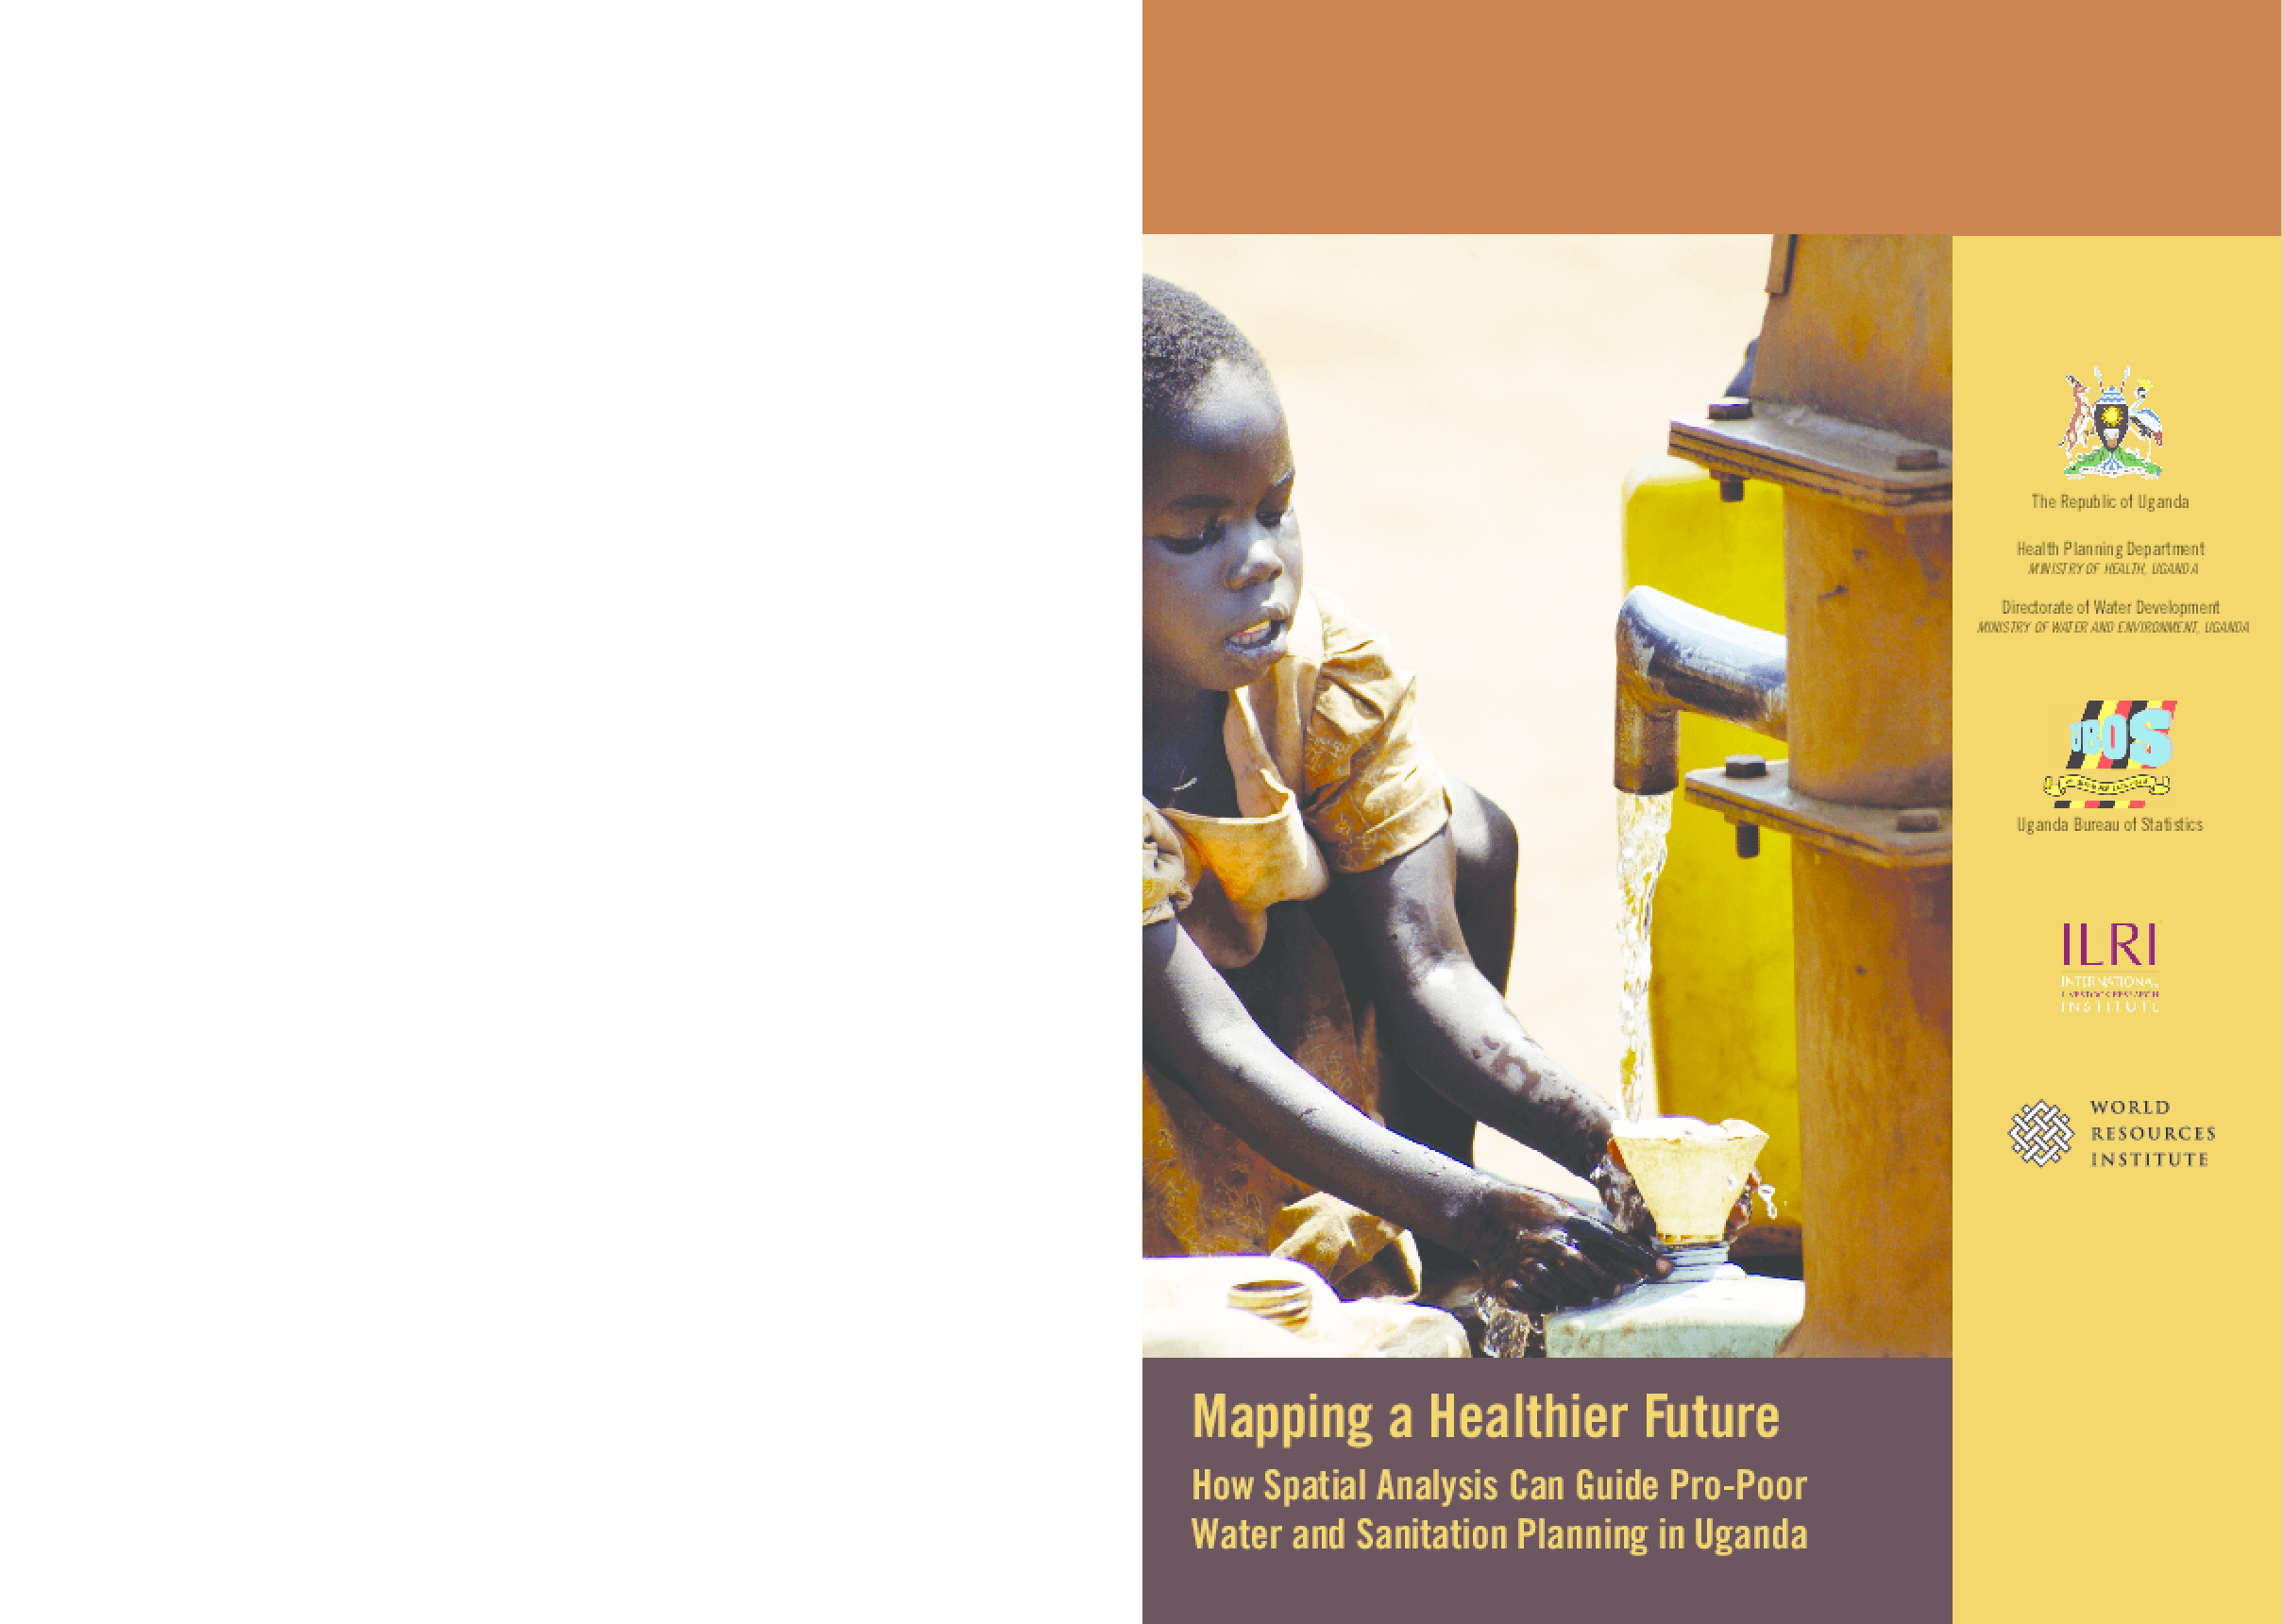 Mapping a Healthier Future: How Spatial Analysis Can Guide Pro-Poor Water and Sanitation Planning in Uganda